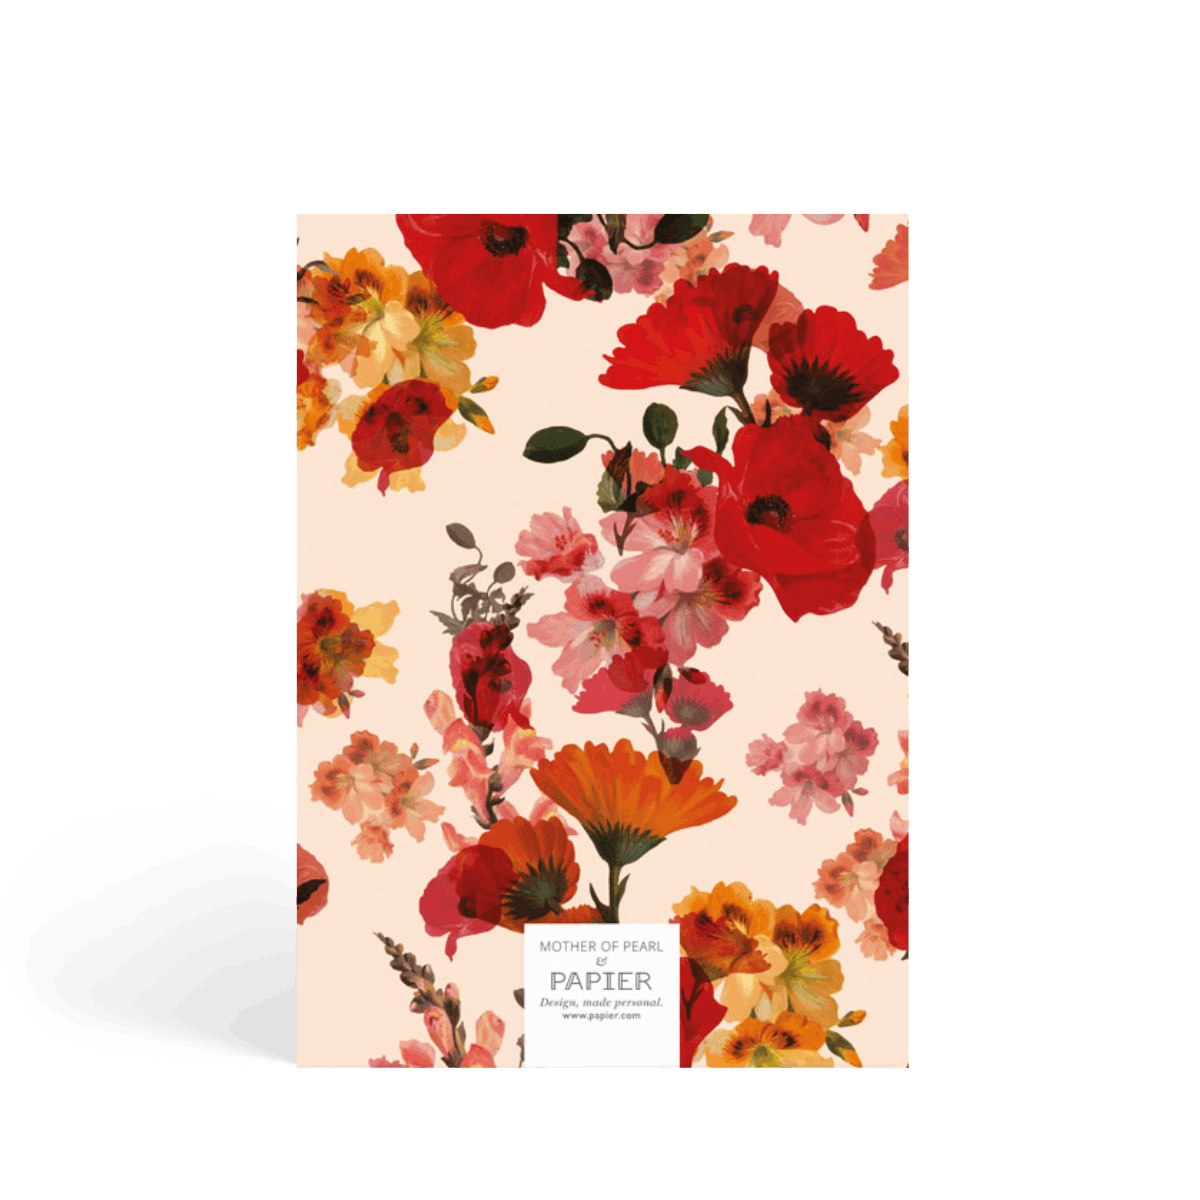 Https%3a%2f%2fwww.papier.com%2fproduct image%2f63601%2f5%2fcordelia floral 14958 back 1548793523.png?ixlib=rb 1.1